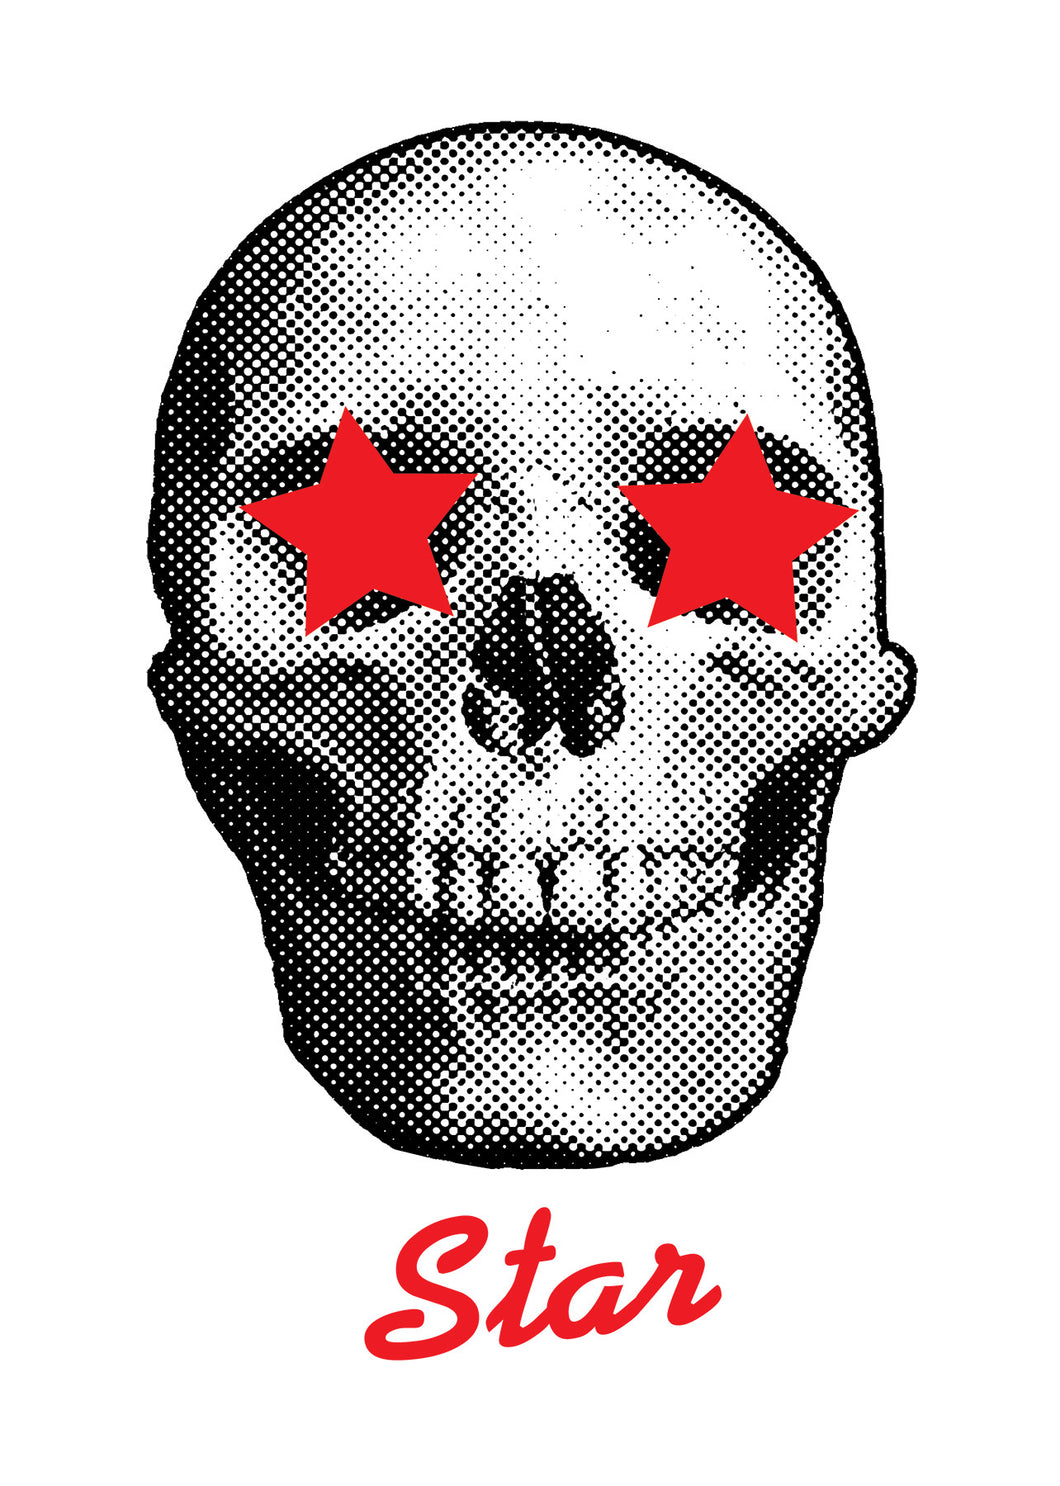 Death Star, skull with stars in his eyes t-shirt design